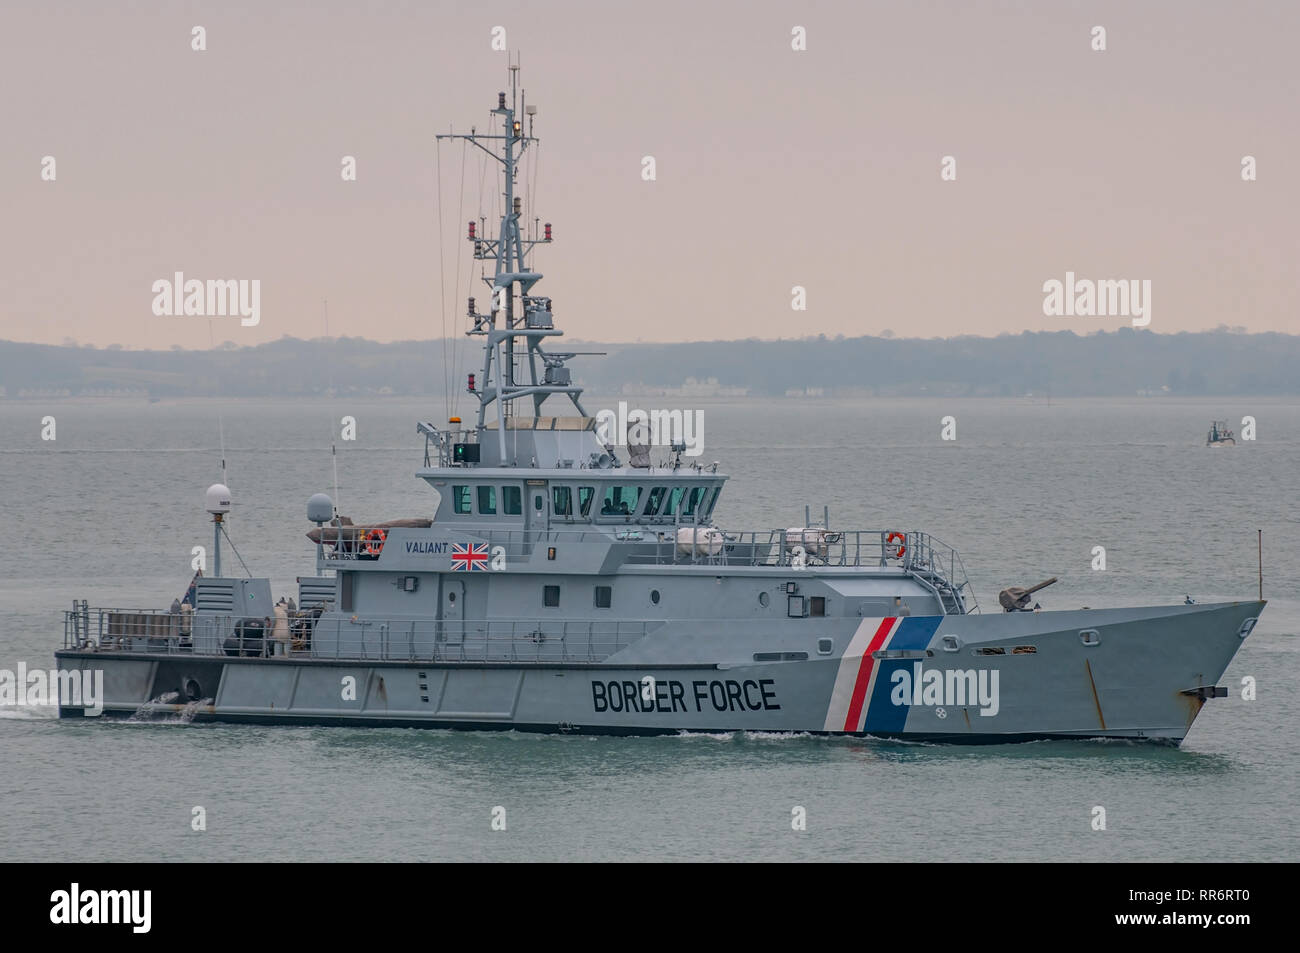 The UK Border Force cutter HMC Valiant approaching it's operating base in Portsmouth Harbour, UK on the 18th March 2016. Stock Photo